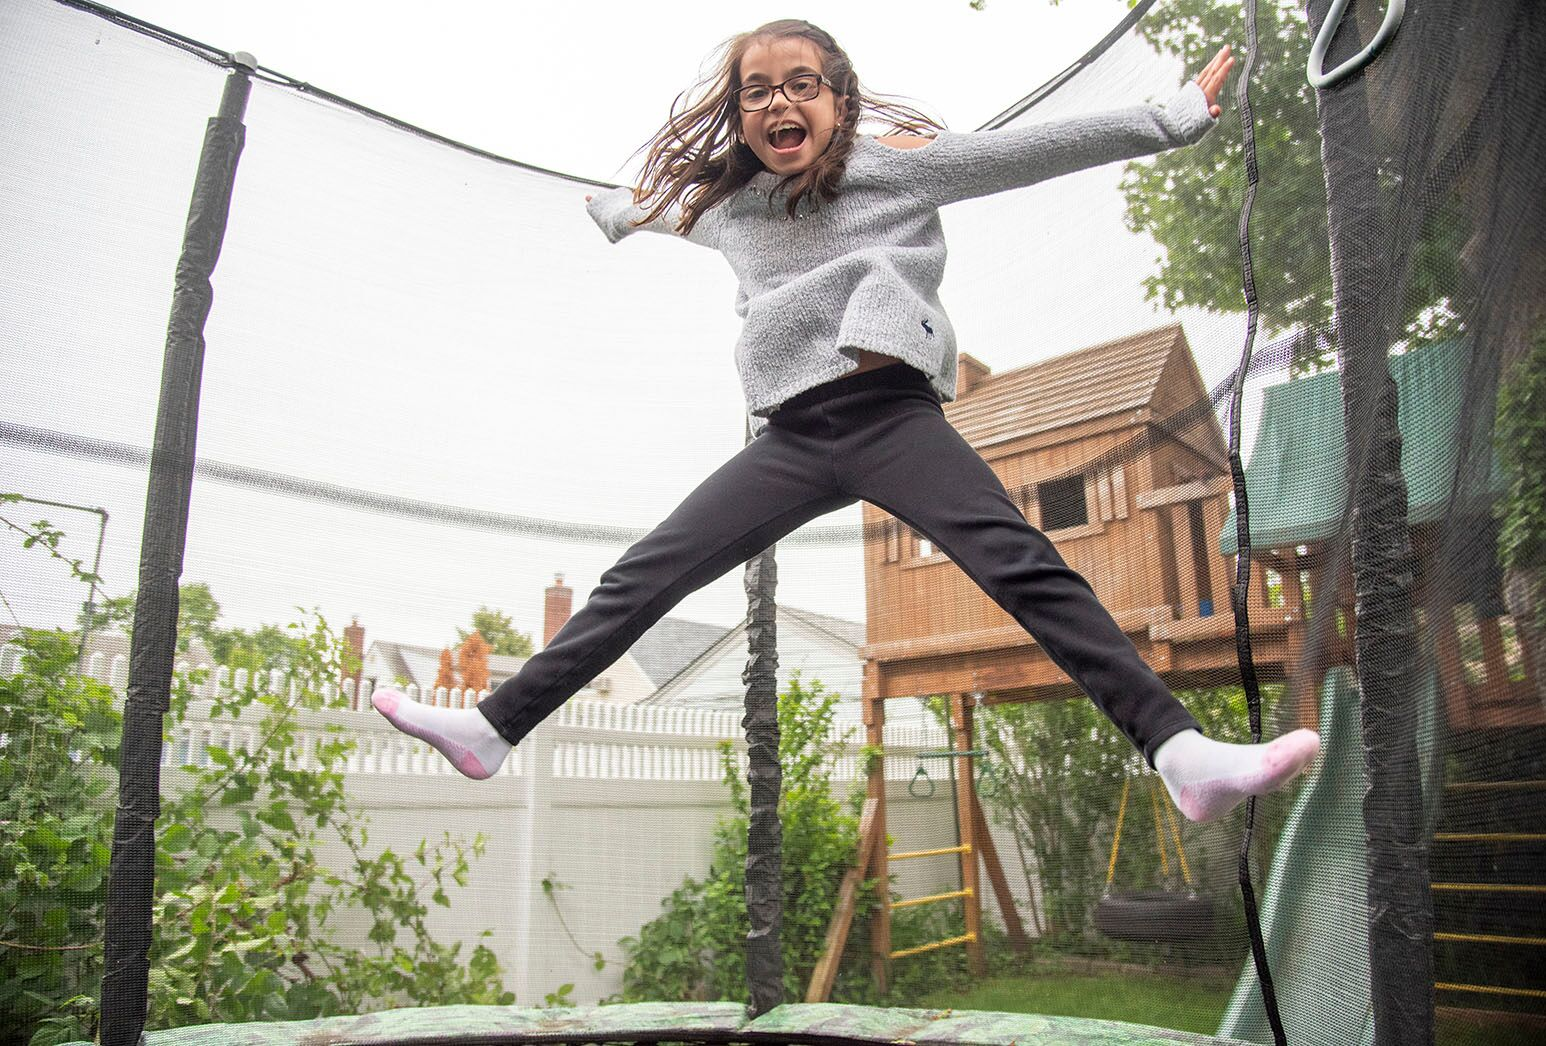 Young girl with brown hair jumps high on a trampoline in her backyard.